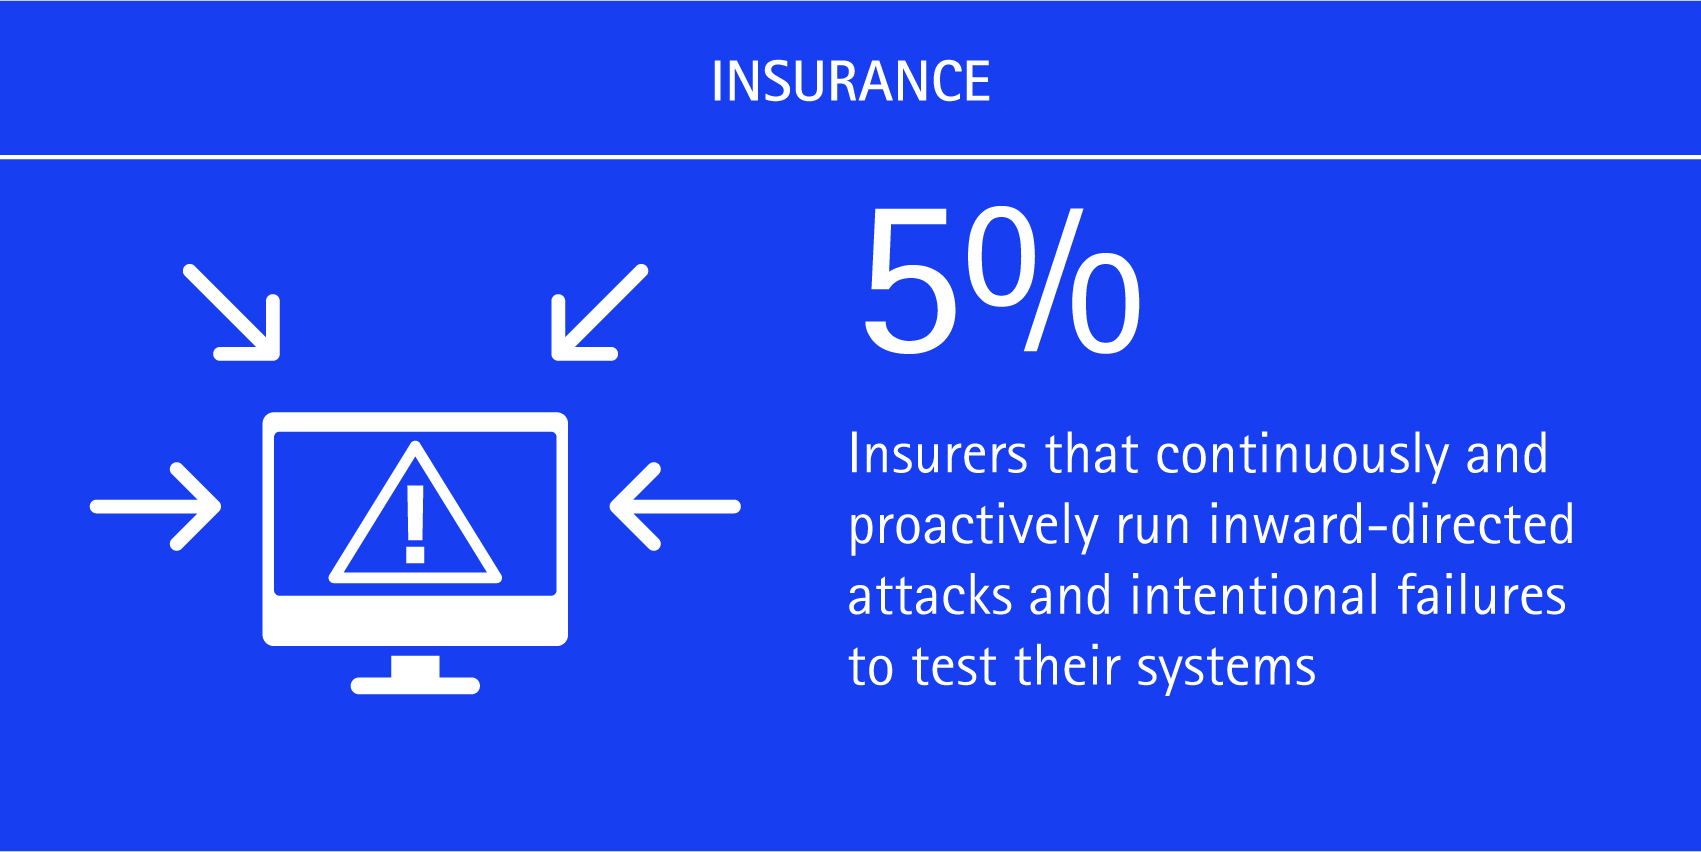 5% of insurers that continuously and proactively run inward-directed attached and intentional failures to test their systems.